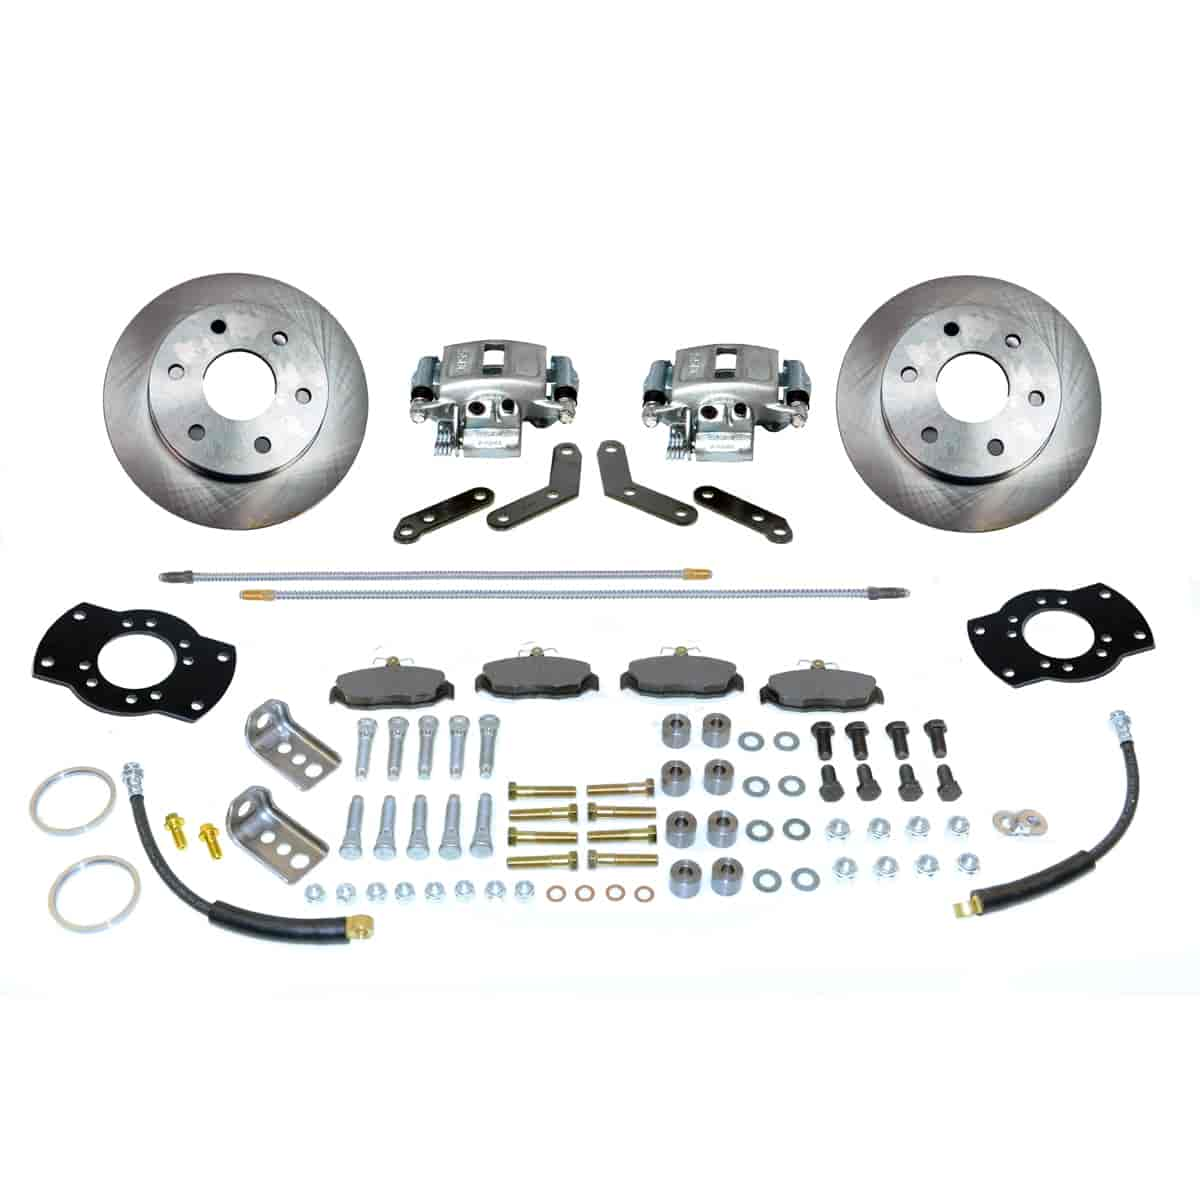 Stainless Steel Brakes A126-1 - Stainless Steel Brakes Single Piston Rear Drum to Disc Brake Conversion Kits